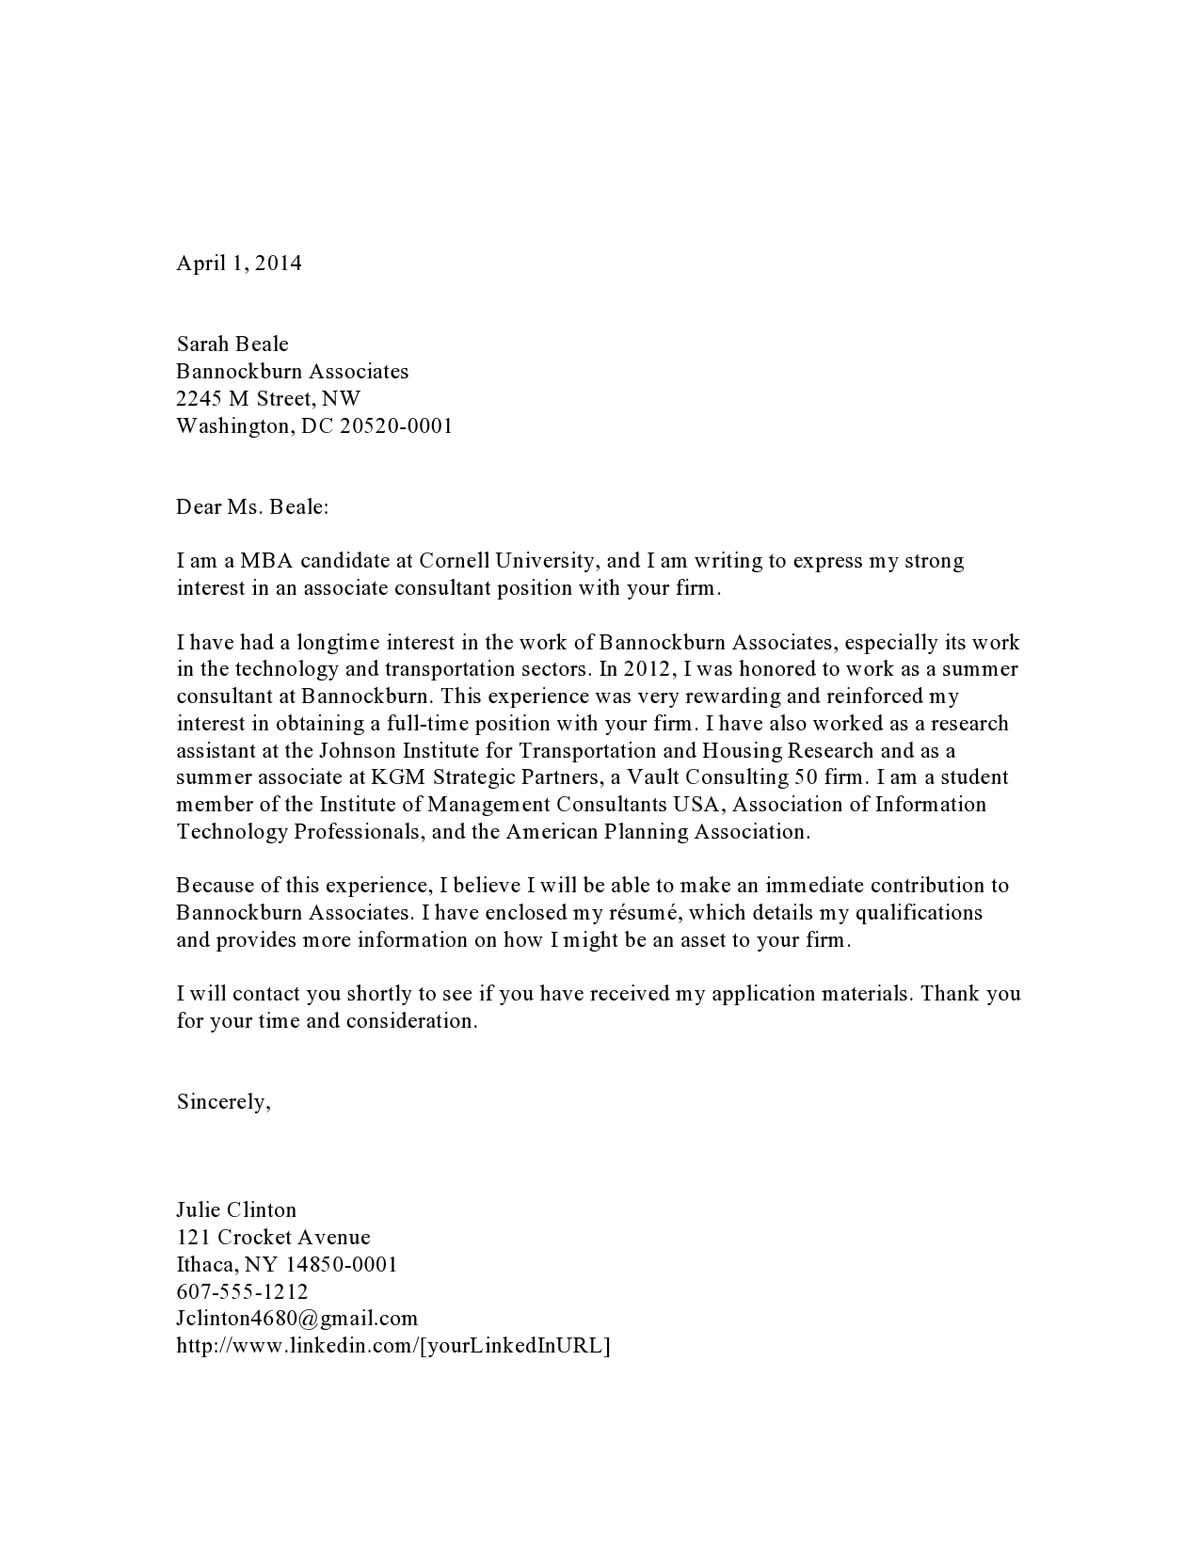 Cover Letter For Consulting Job from media2.vault.com